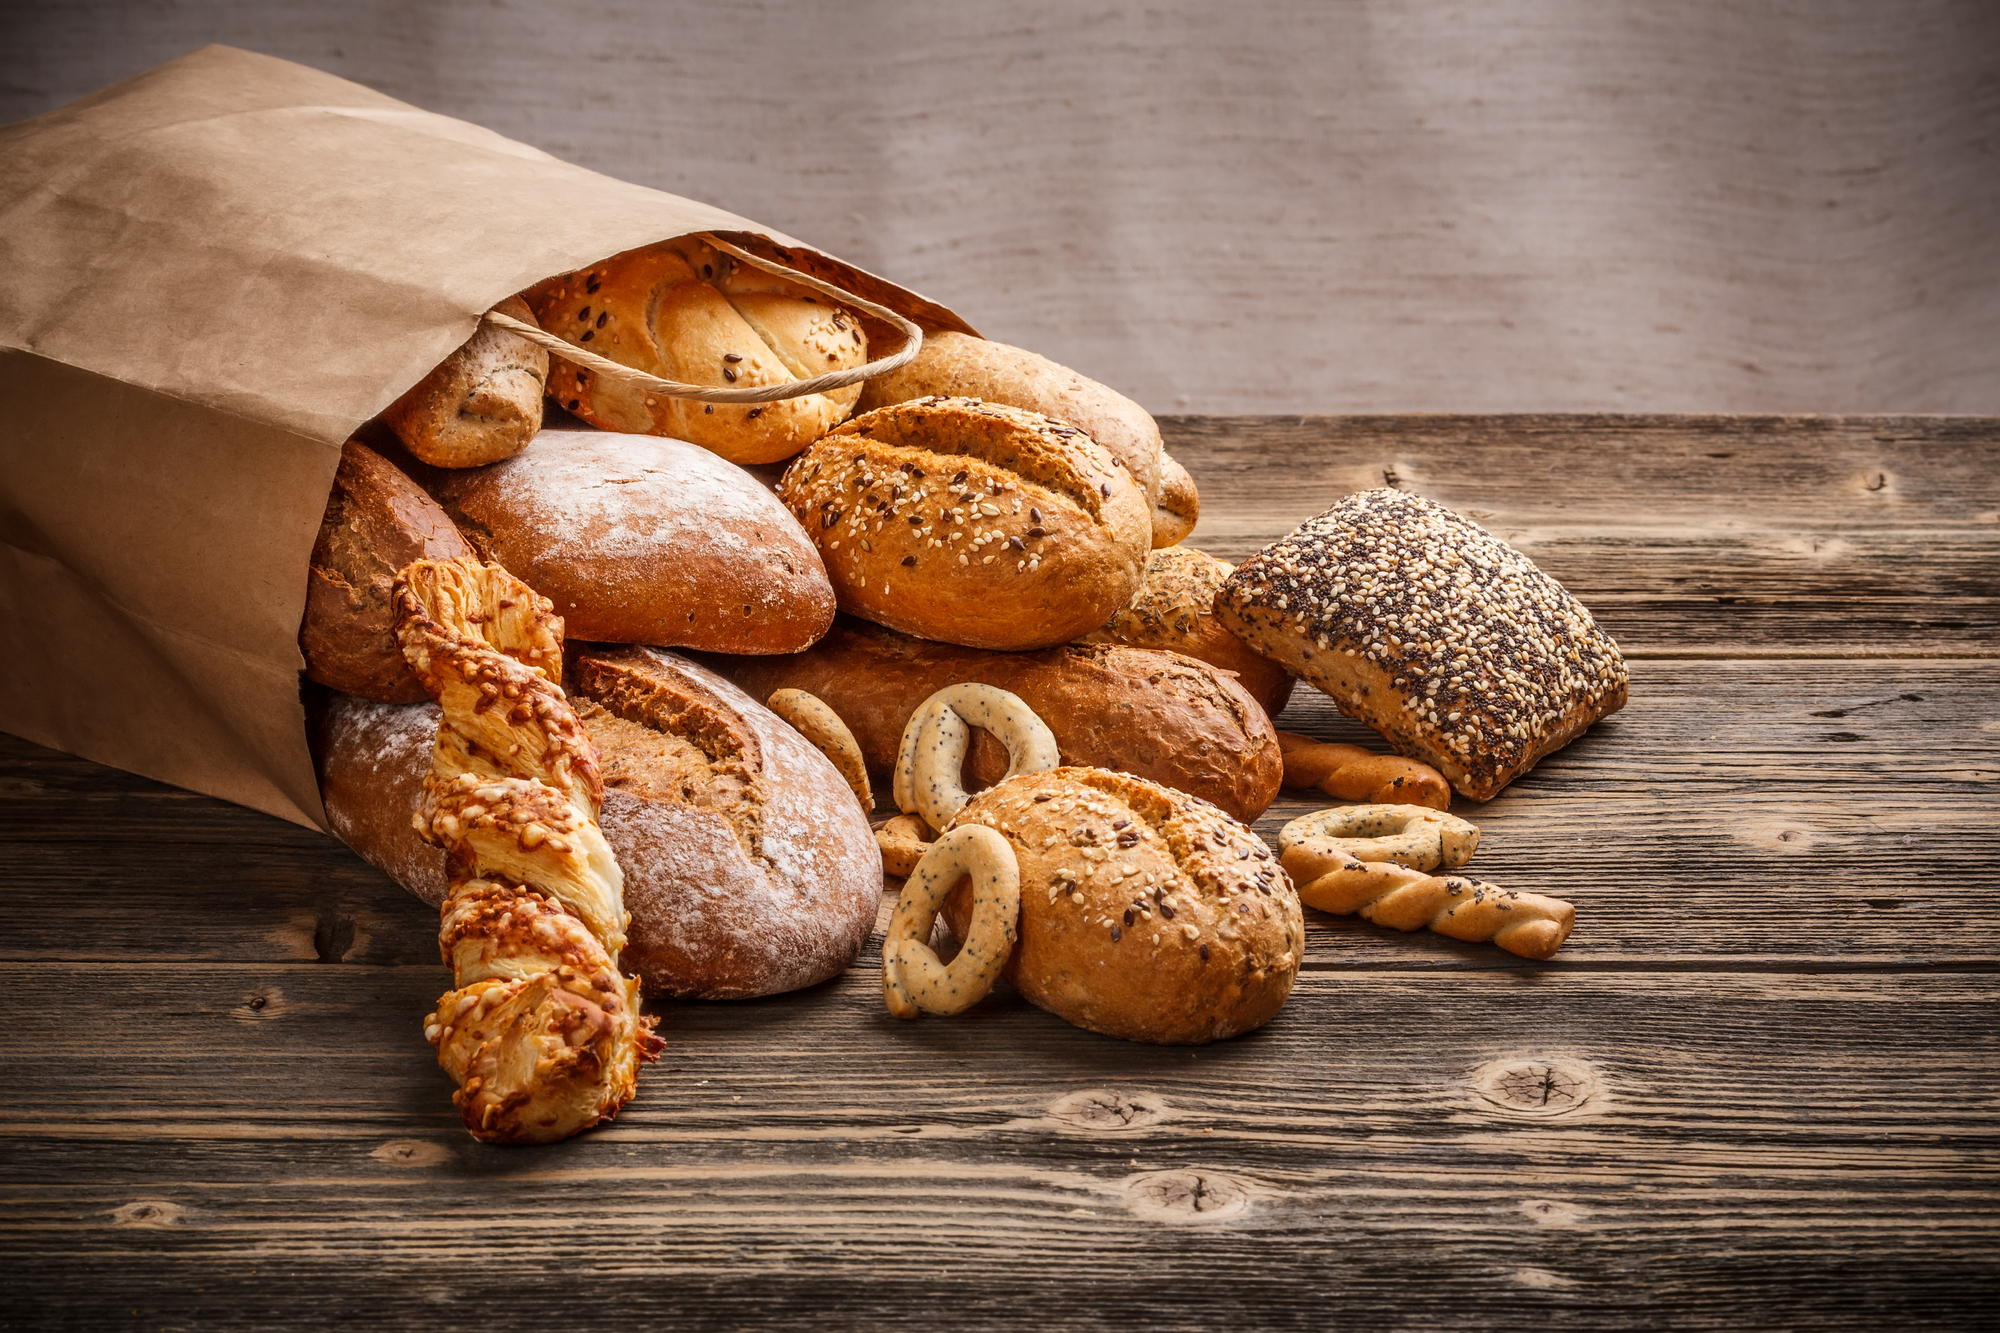 Celiac disease may be partly triggered by bacterial infection